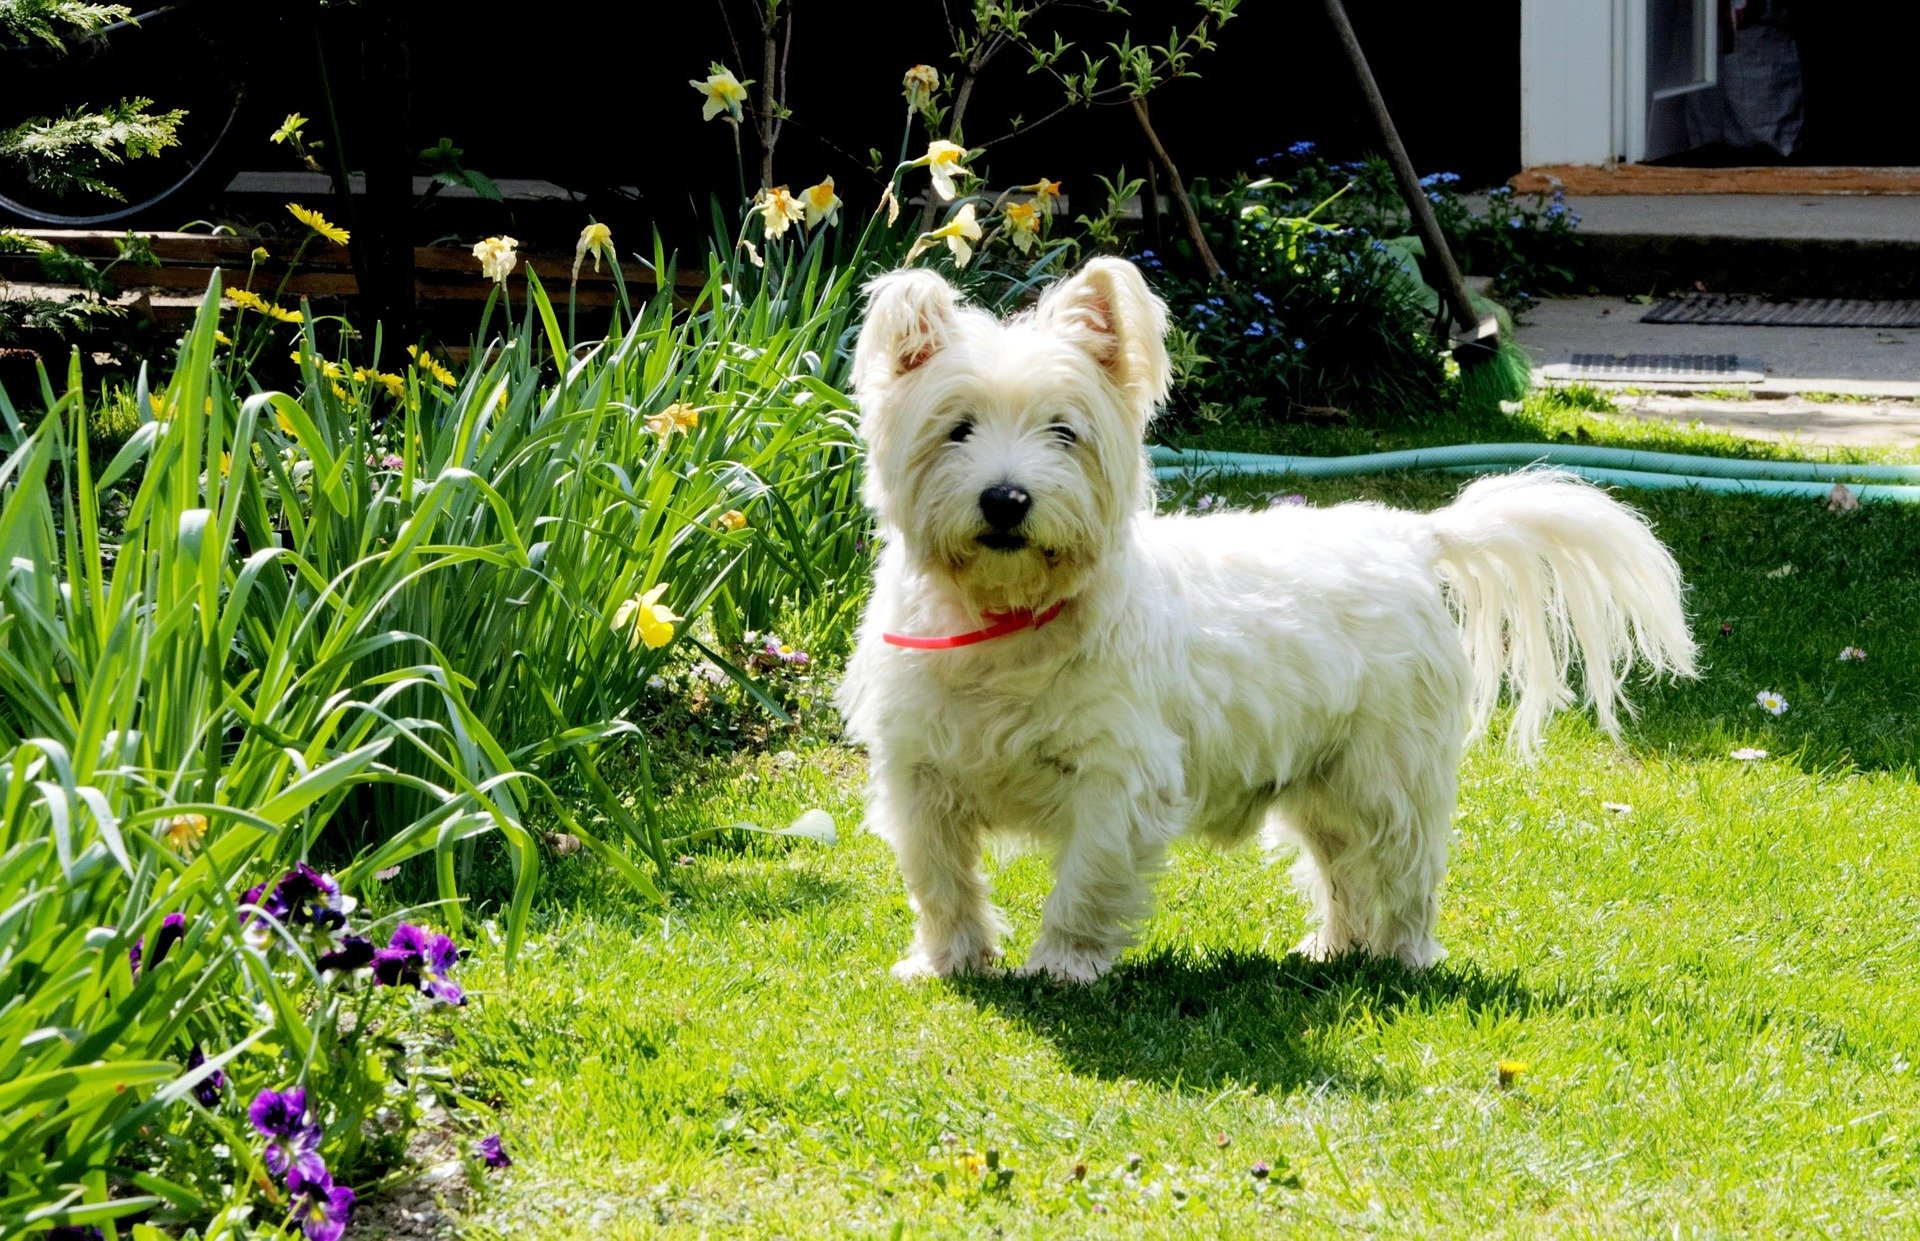 West Highland White Terrier: origins, characteristics and personality